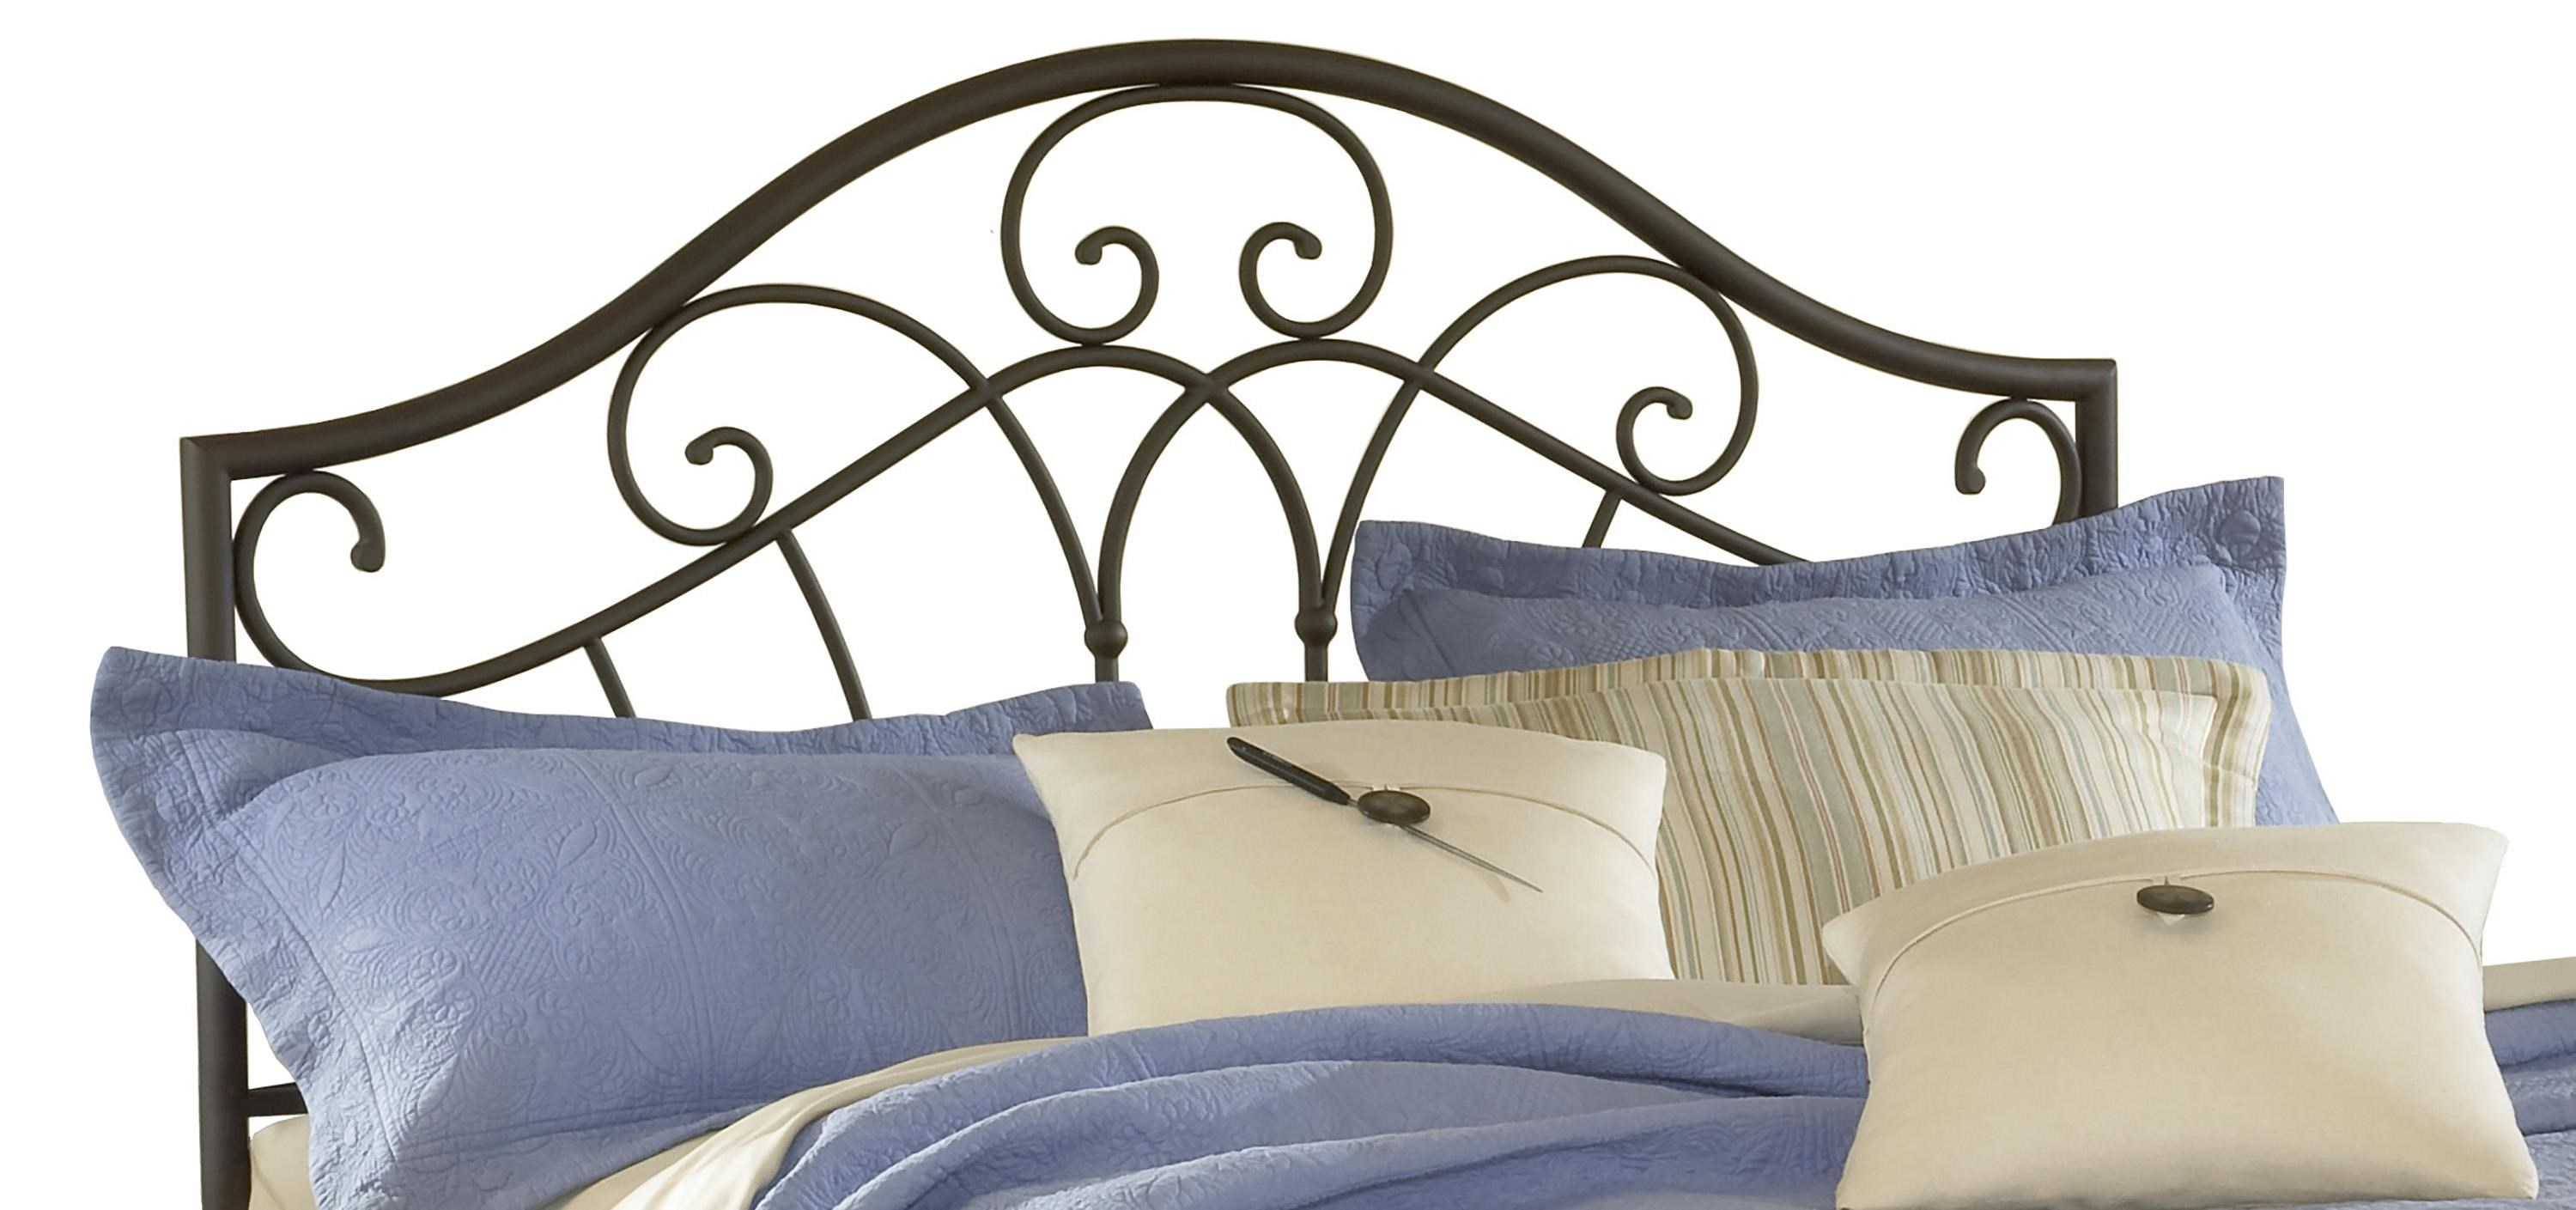 Metal Bed Headboards Metal Beds Josephine Full Queen Headboard With Romantic Design By Hillsdale At Prime Brothers Furniture